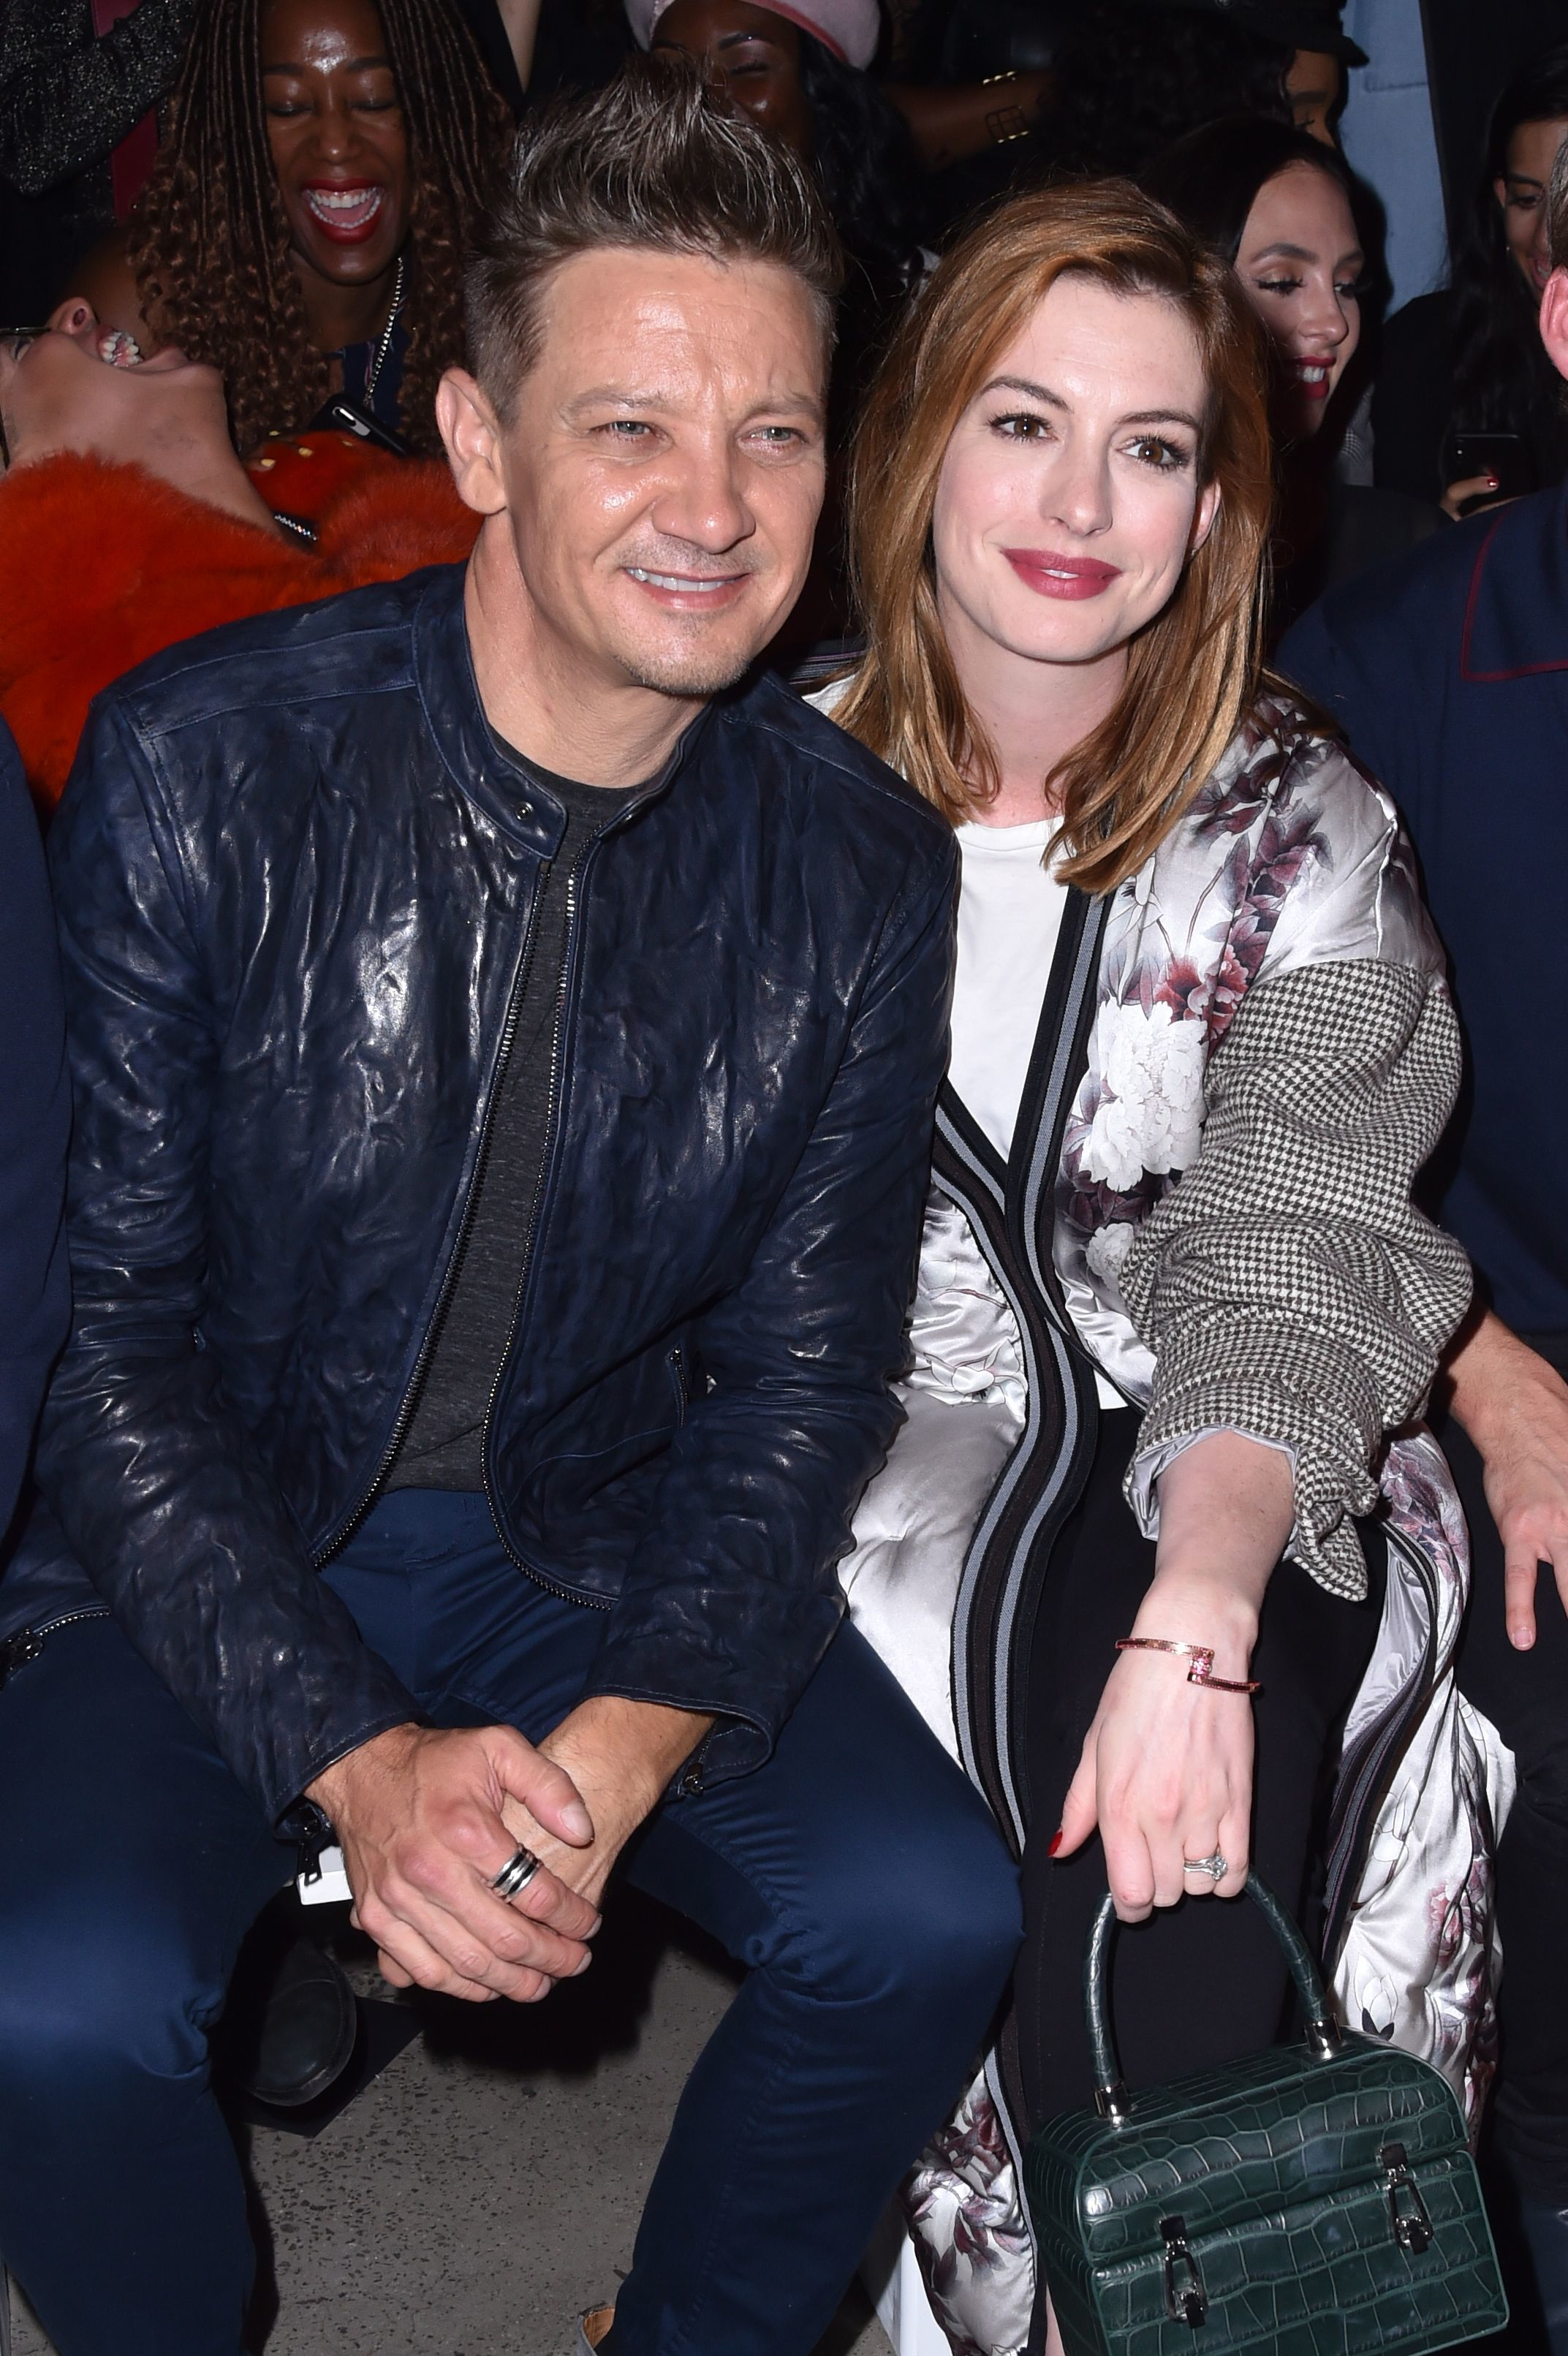 Jeremy Renner and Anne Hathaway attend the Bosideng show for Spring/Summer 2019 at New York Fashion Week on Sept. 11, 2018.